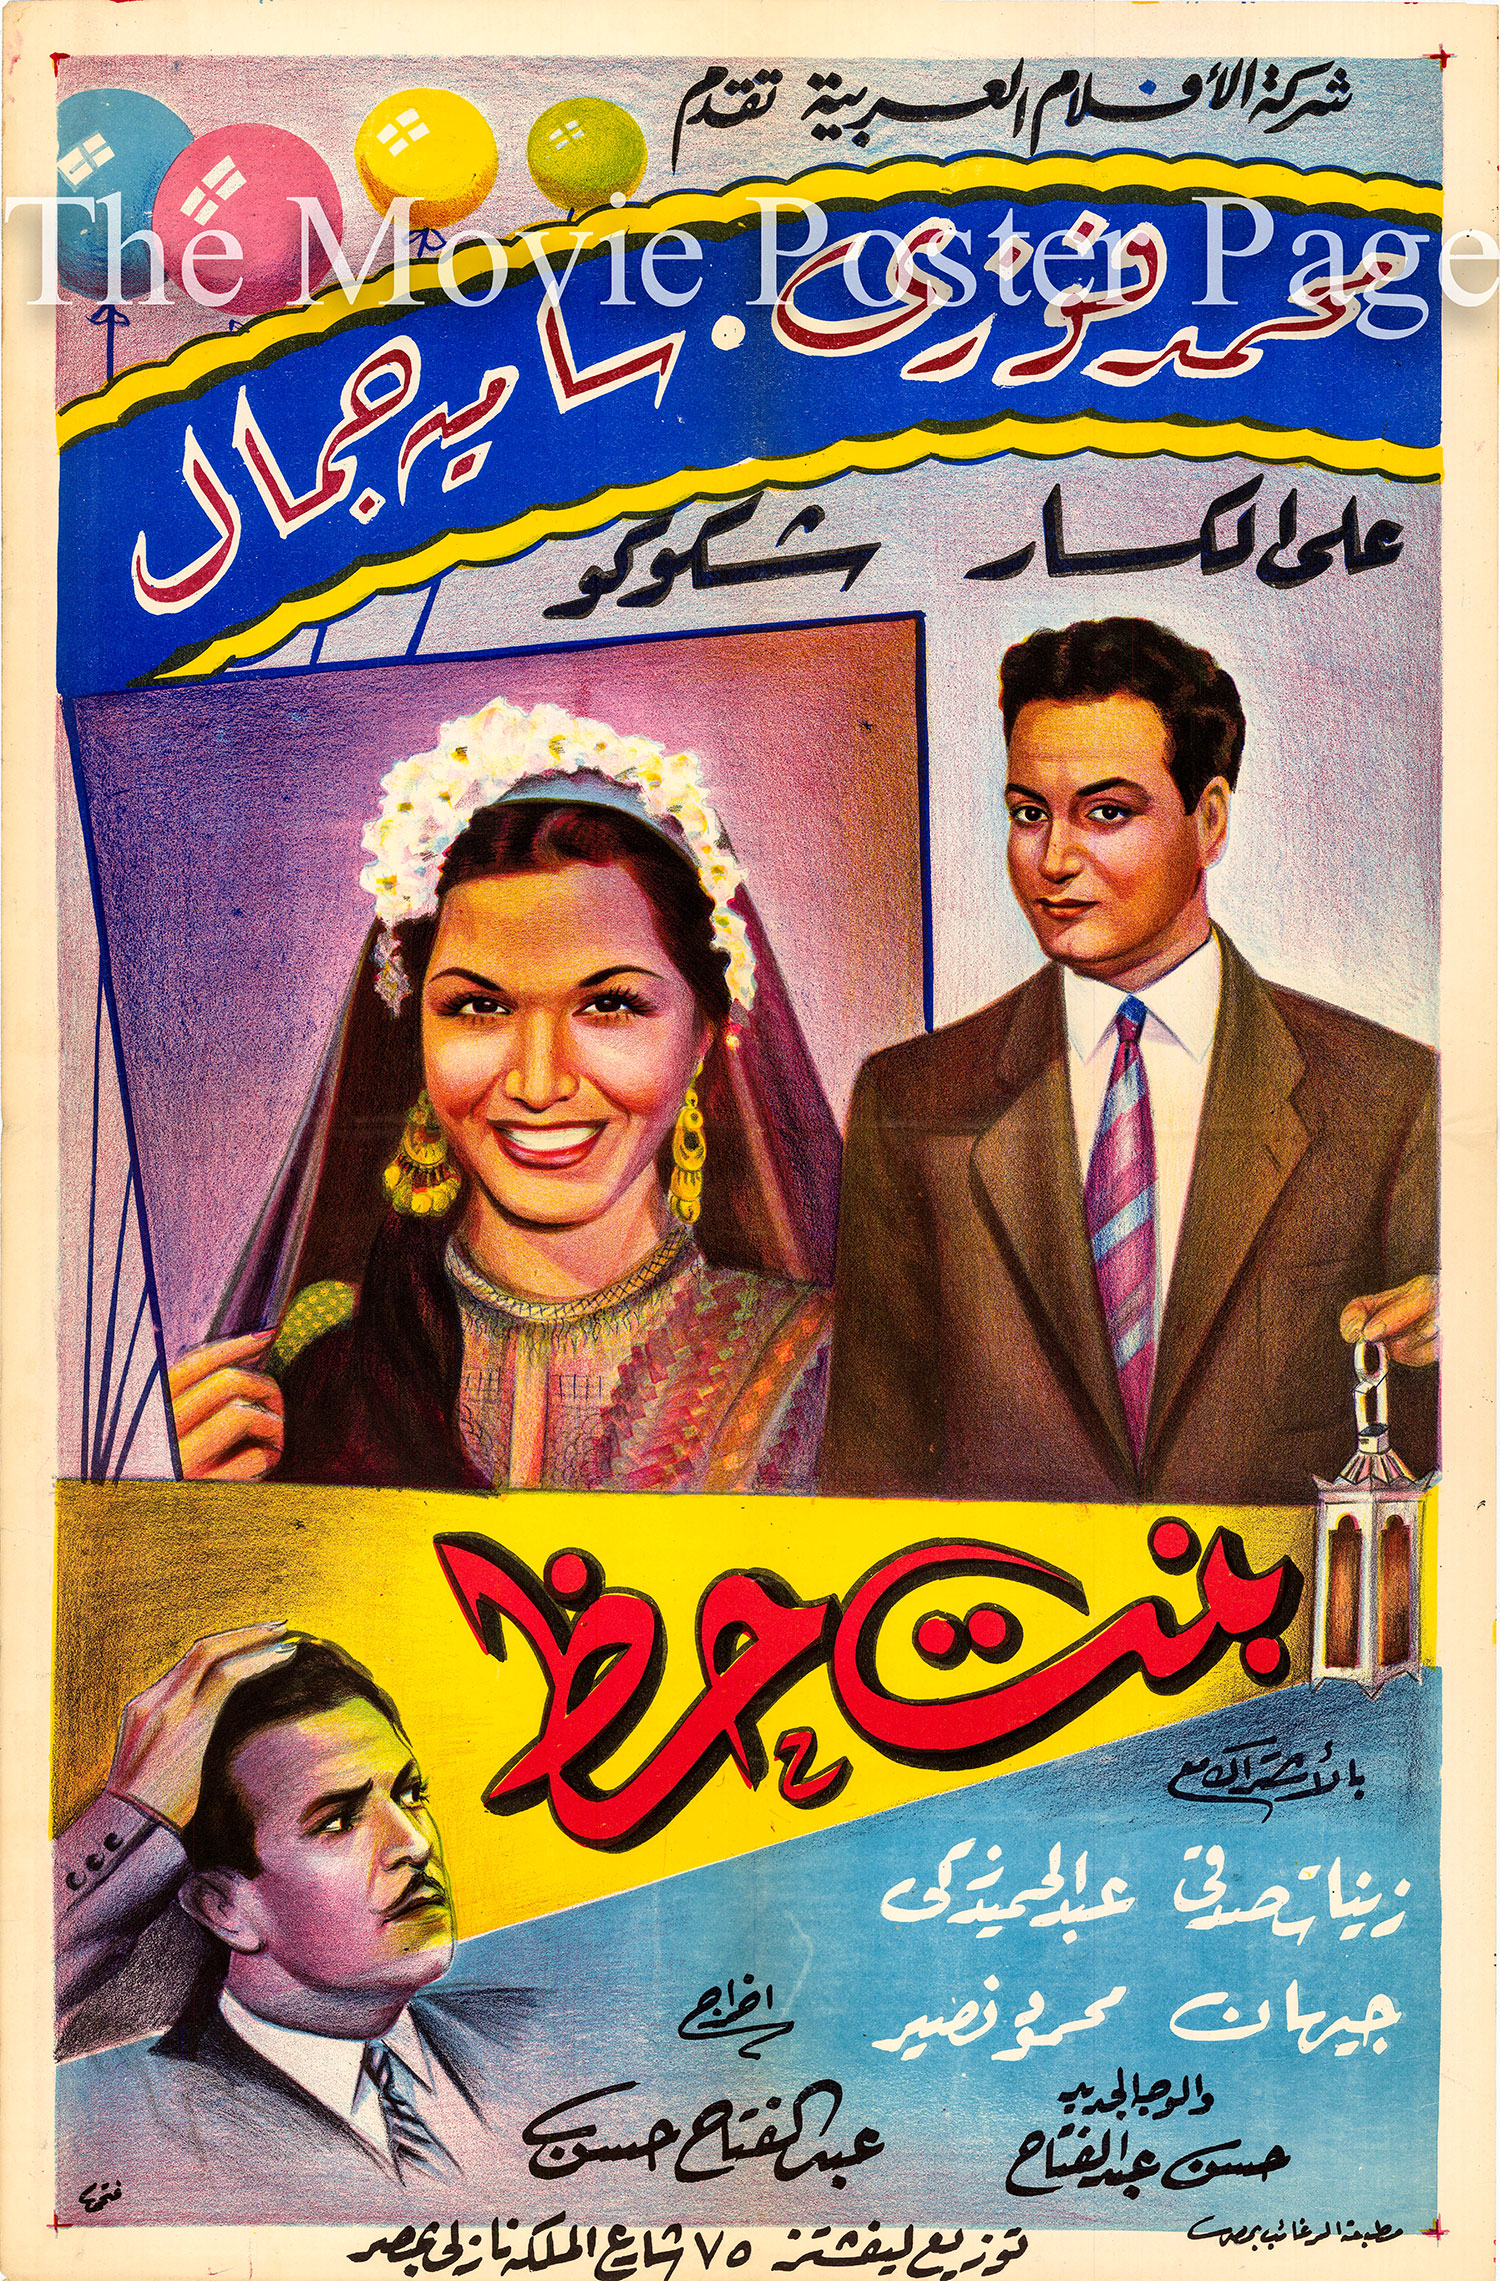 Pictured is an Egyptian promotional poster for the 1949 Abdel Fattah Hassan film Lucky Girl starring Samia Gamal